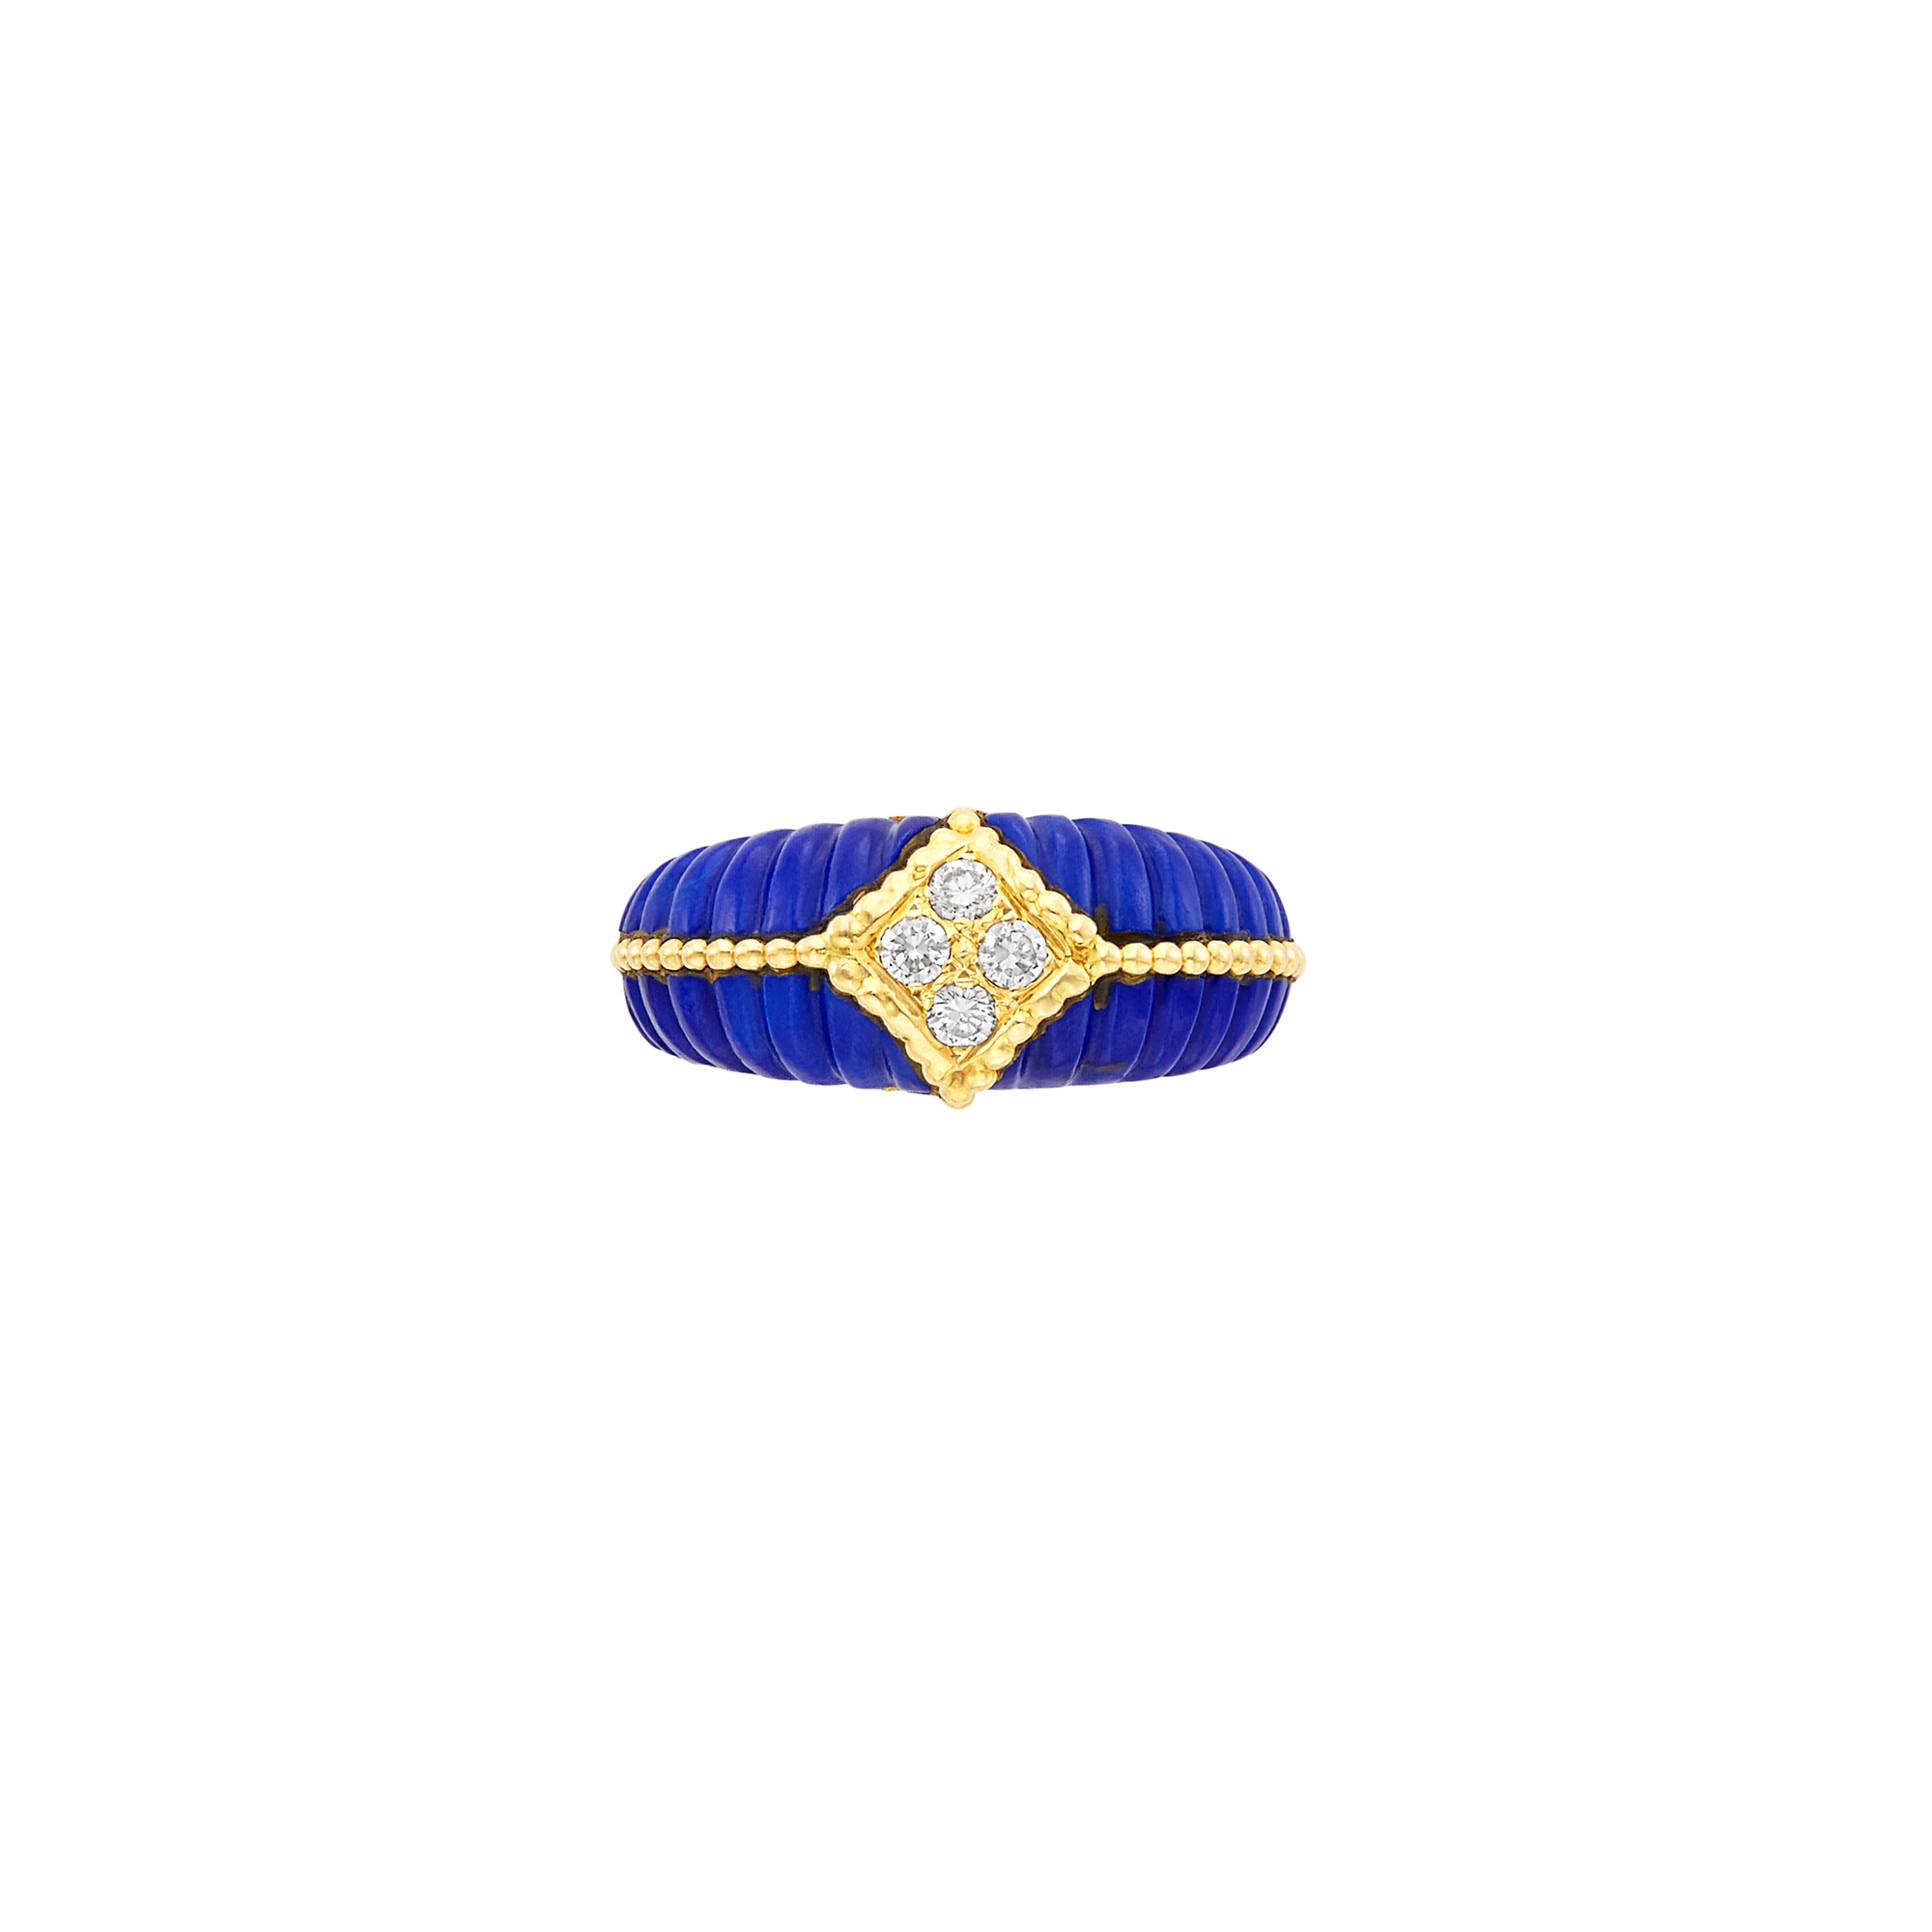 Lot image - Gold, Fluted Lapis and Diamond Ring, Van Cleef & Arpels, France